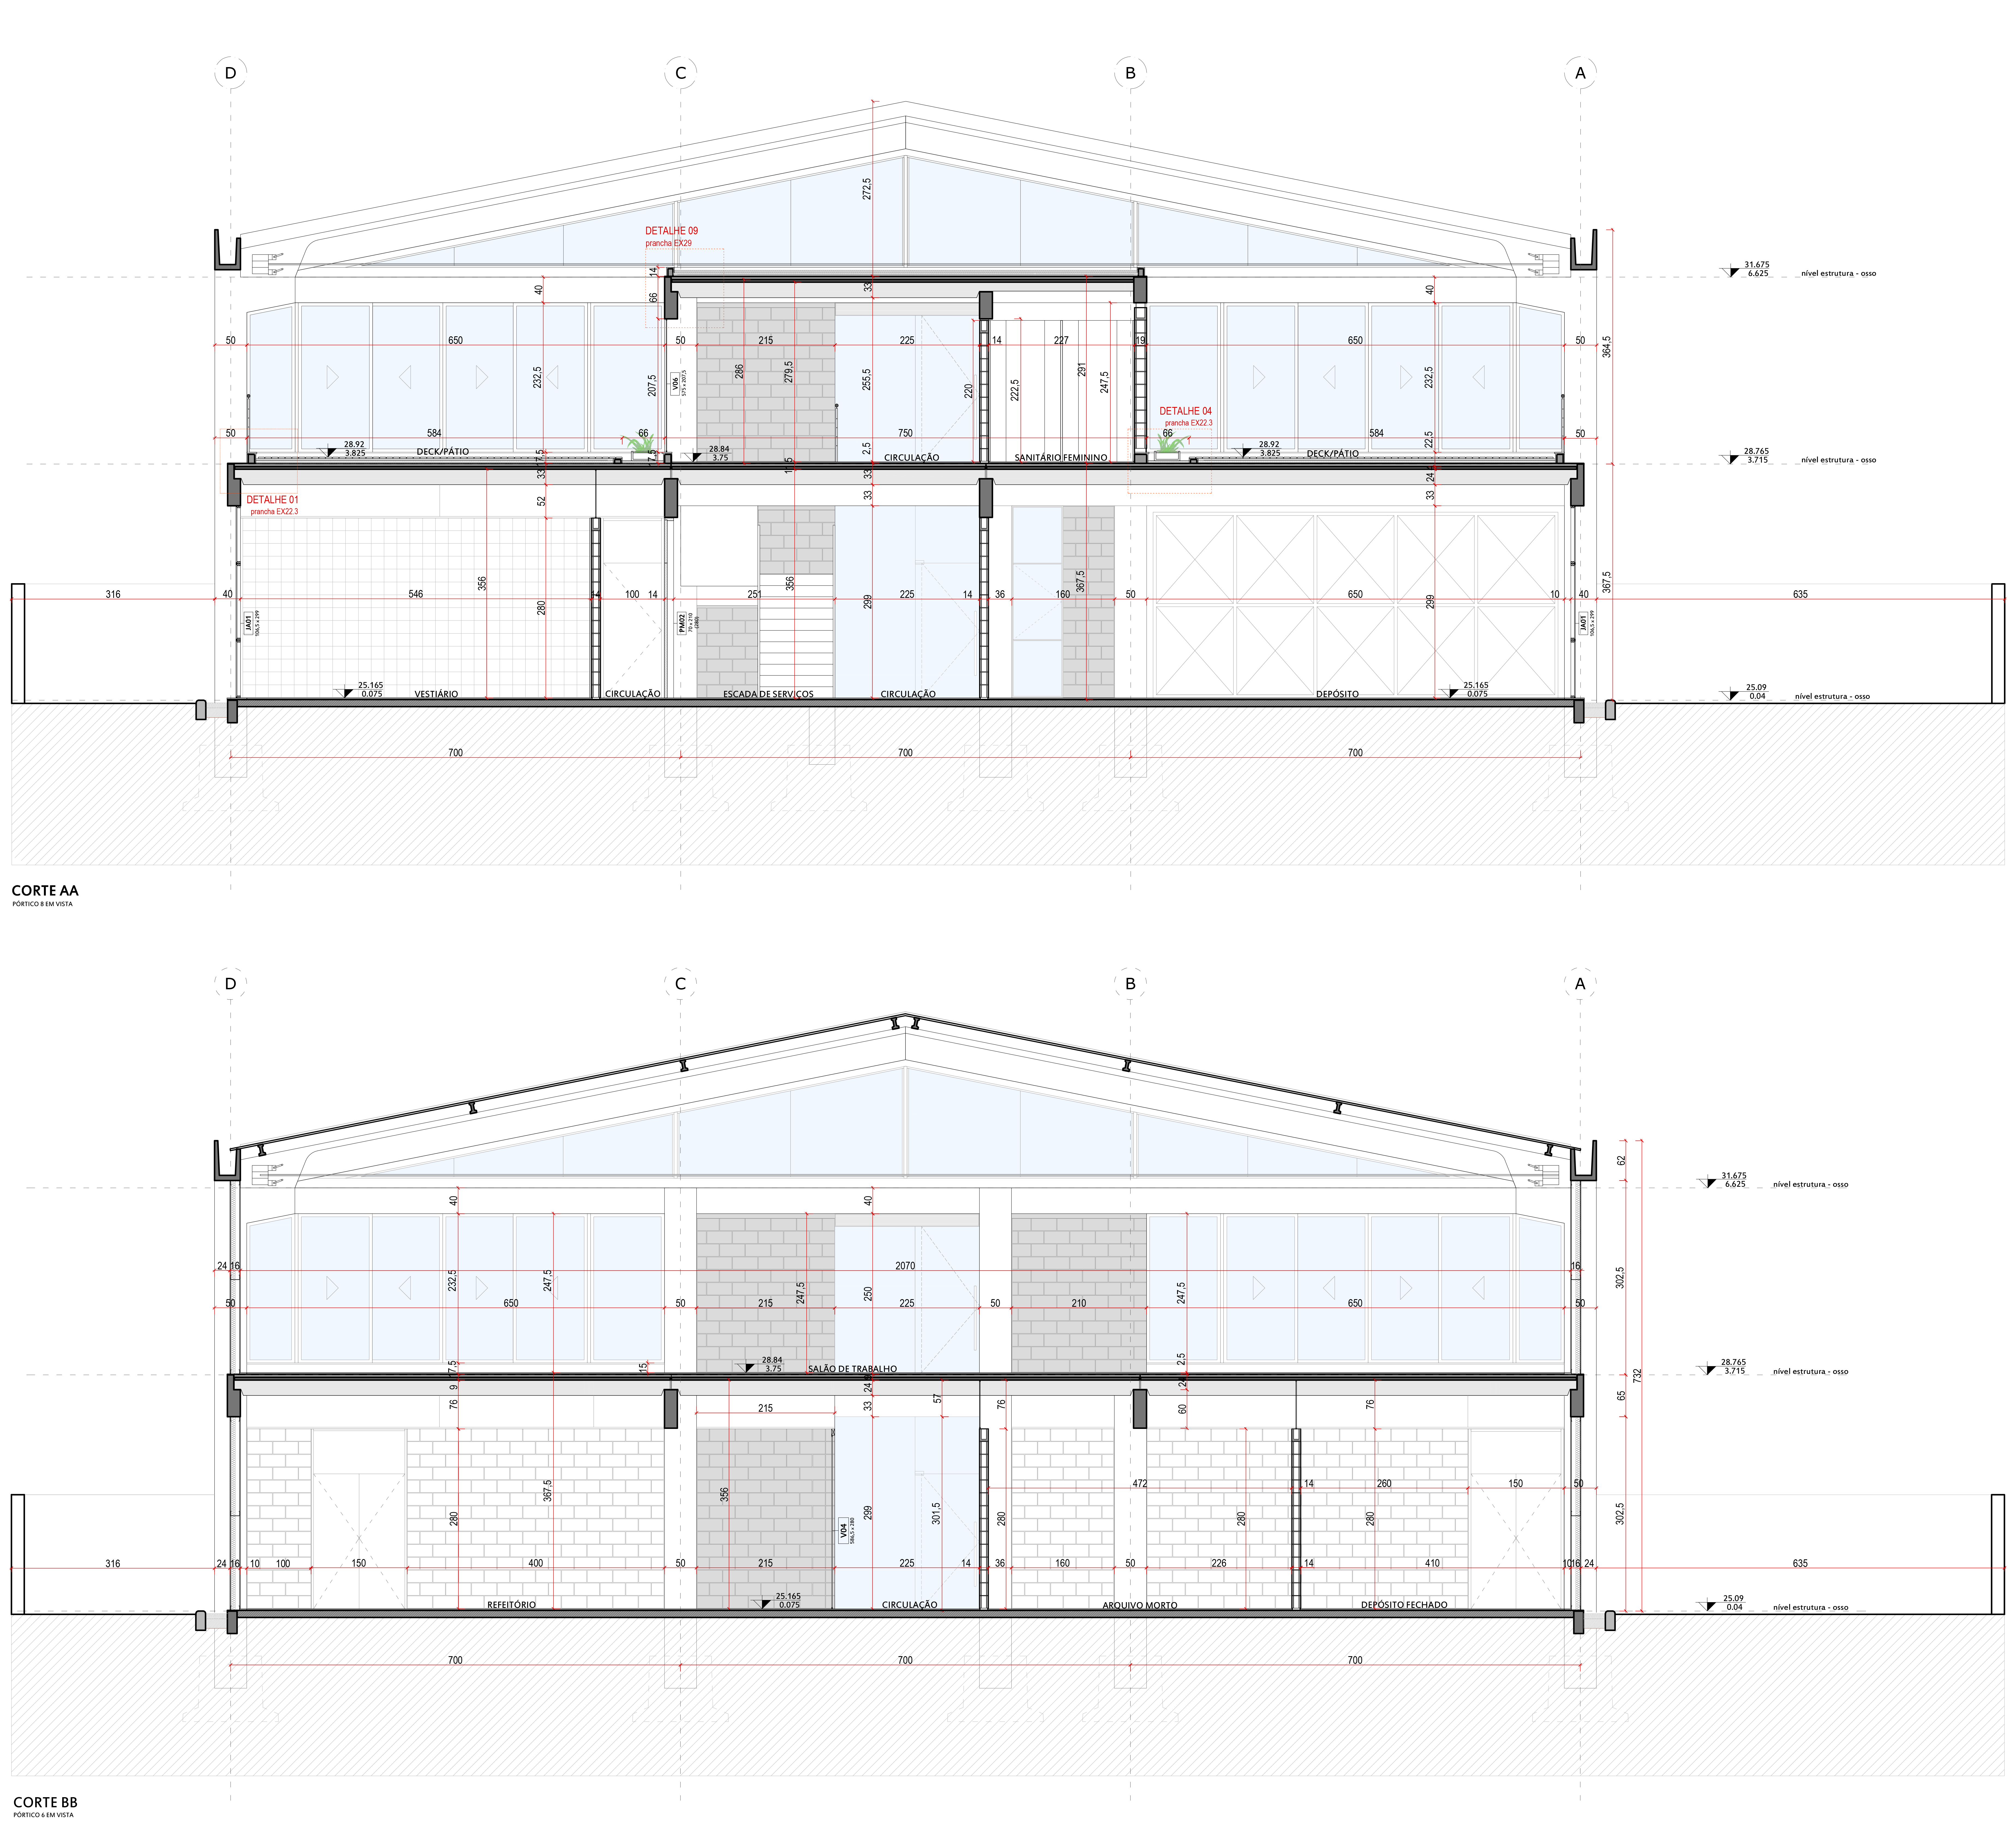 Engemold Headquarters - Sections